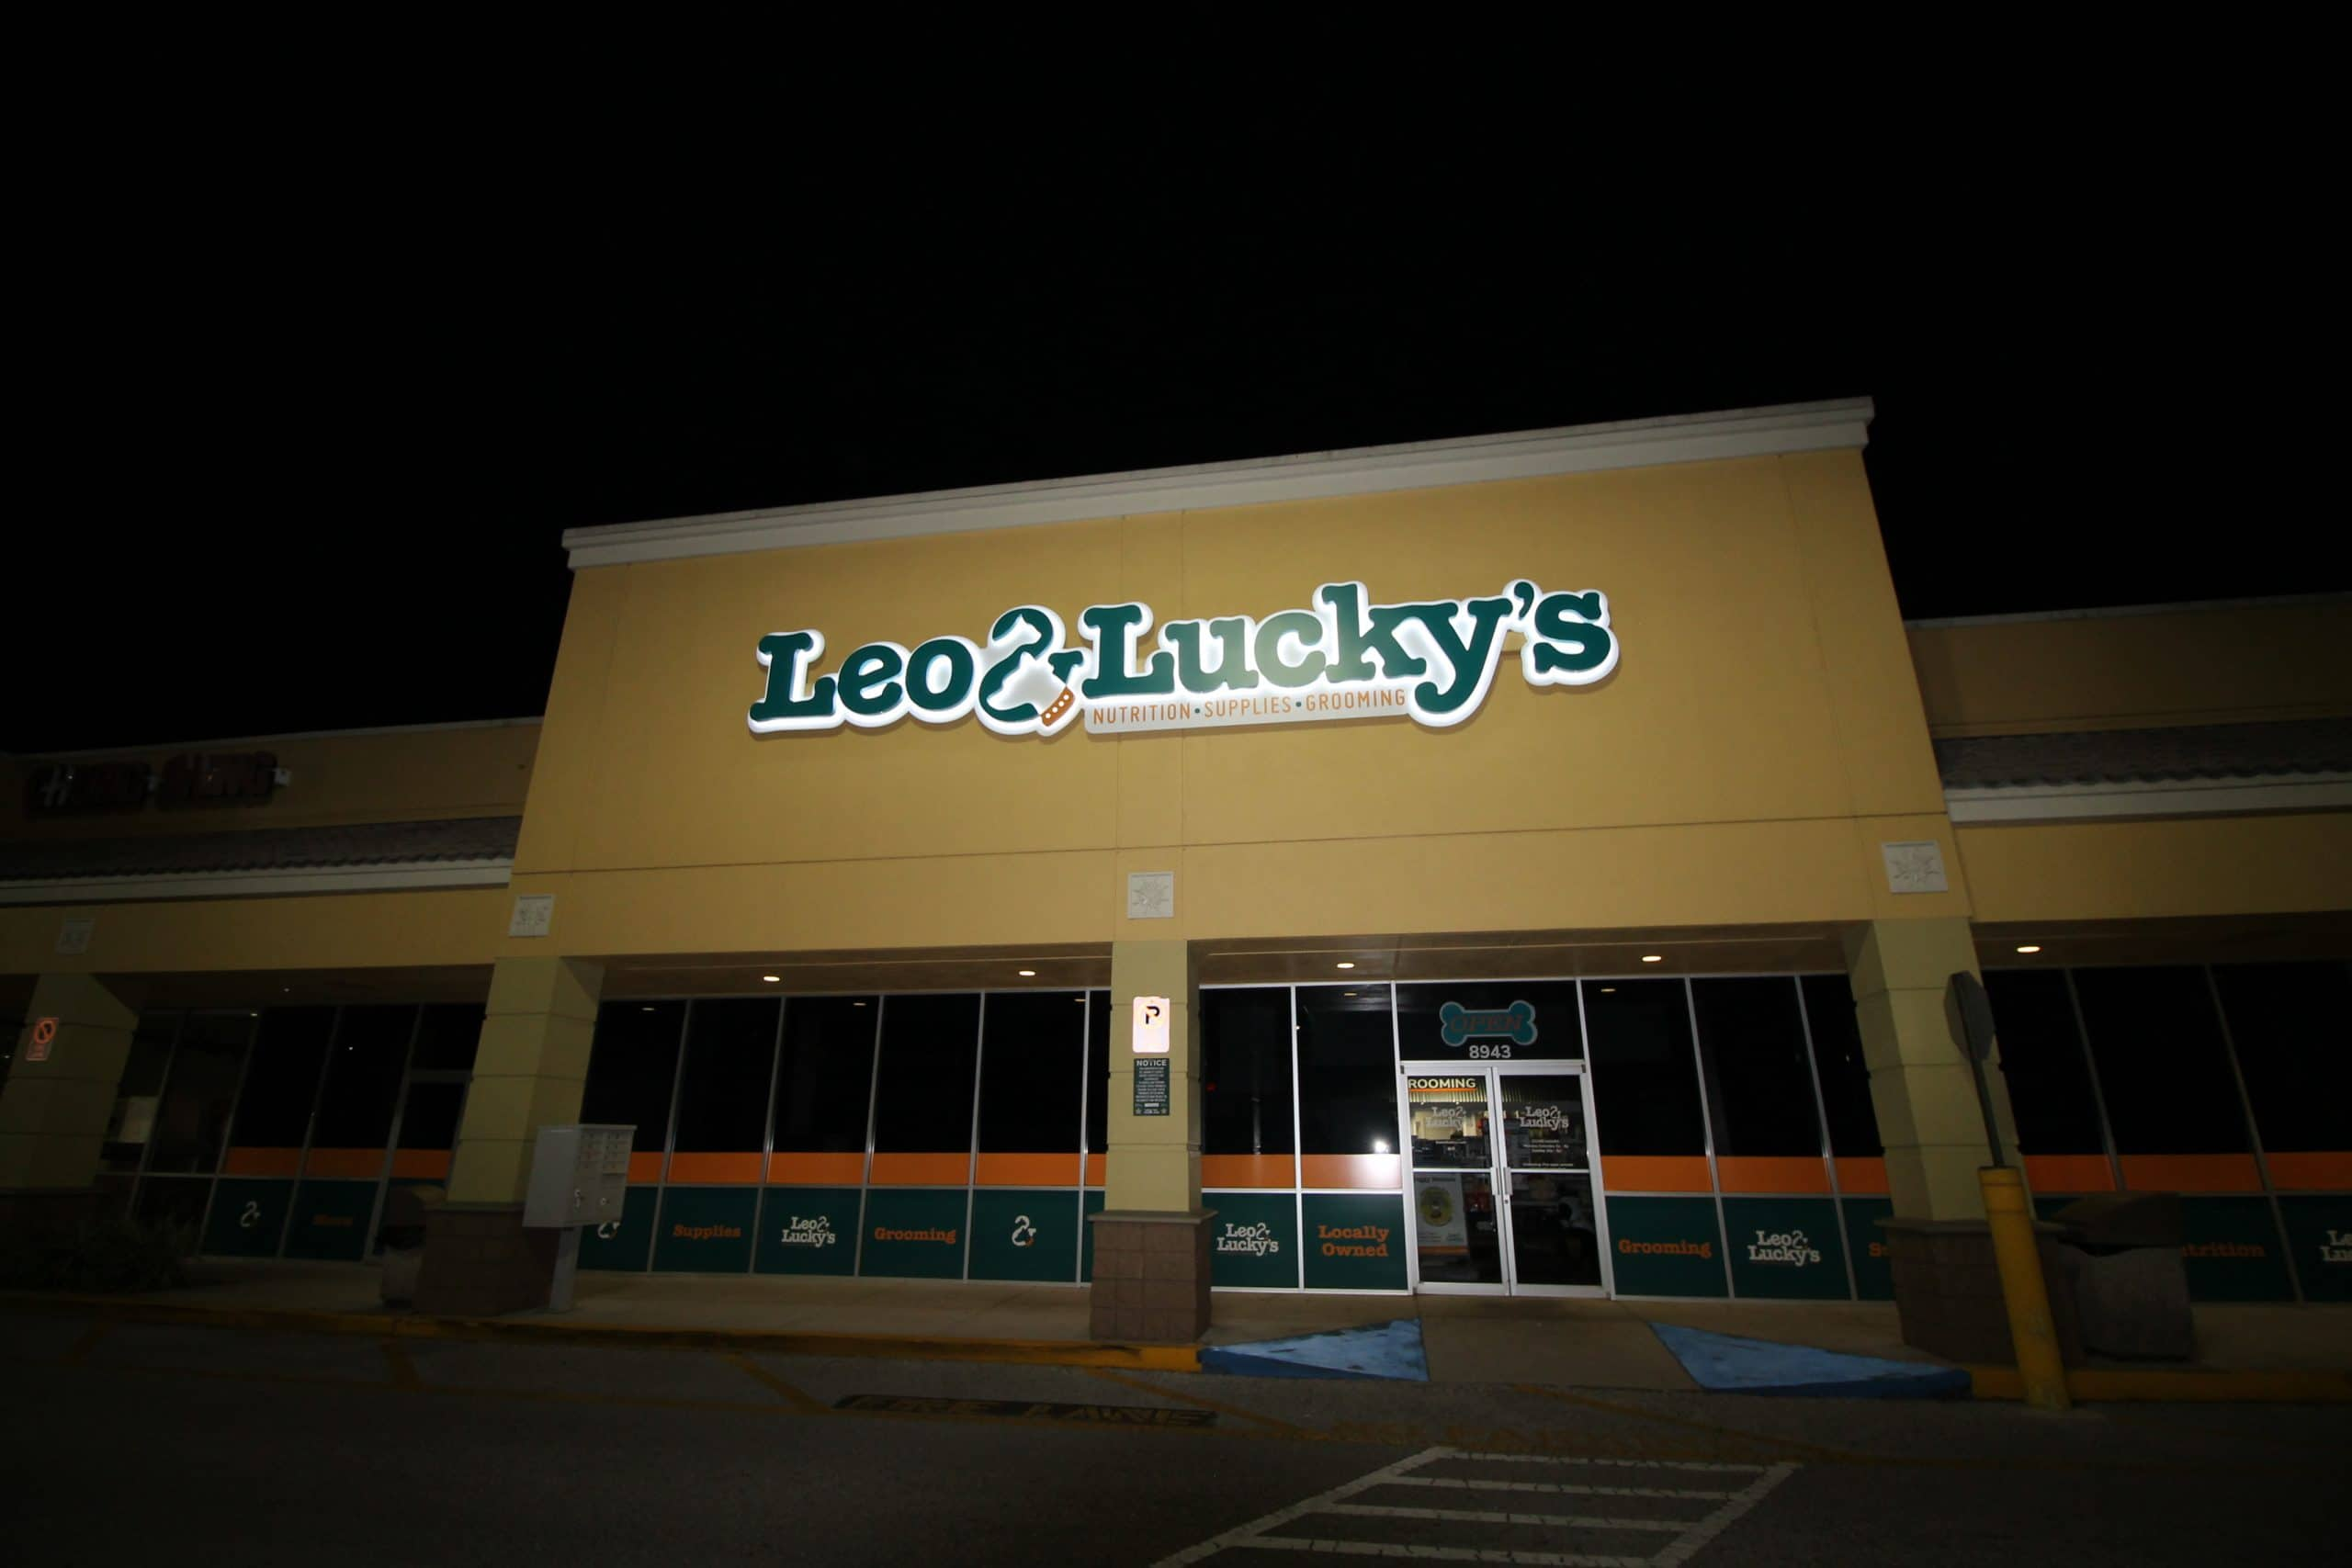 leo and luckys sign at night